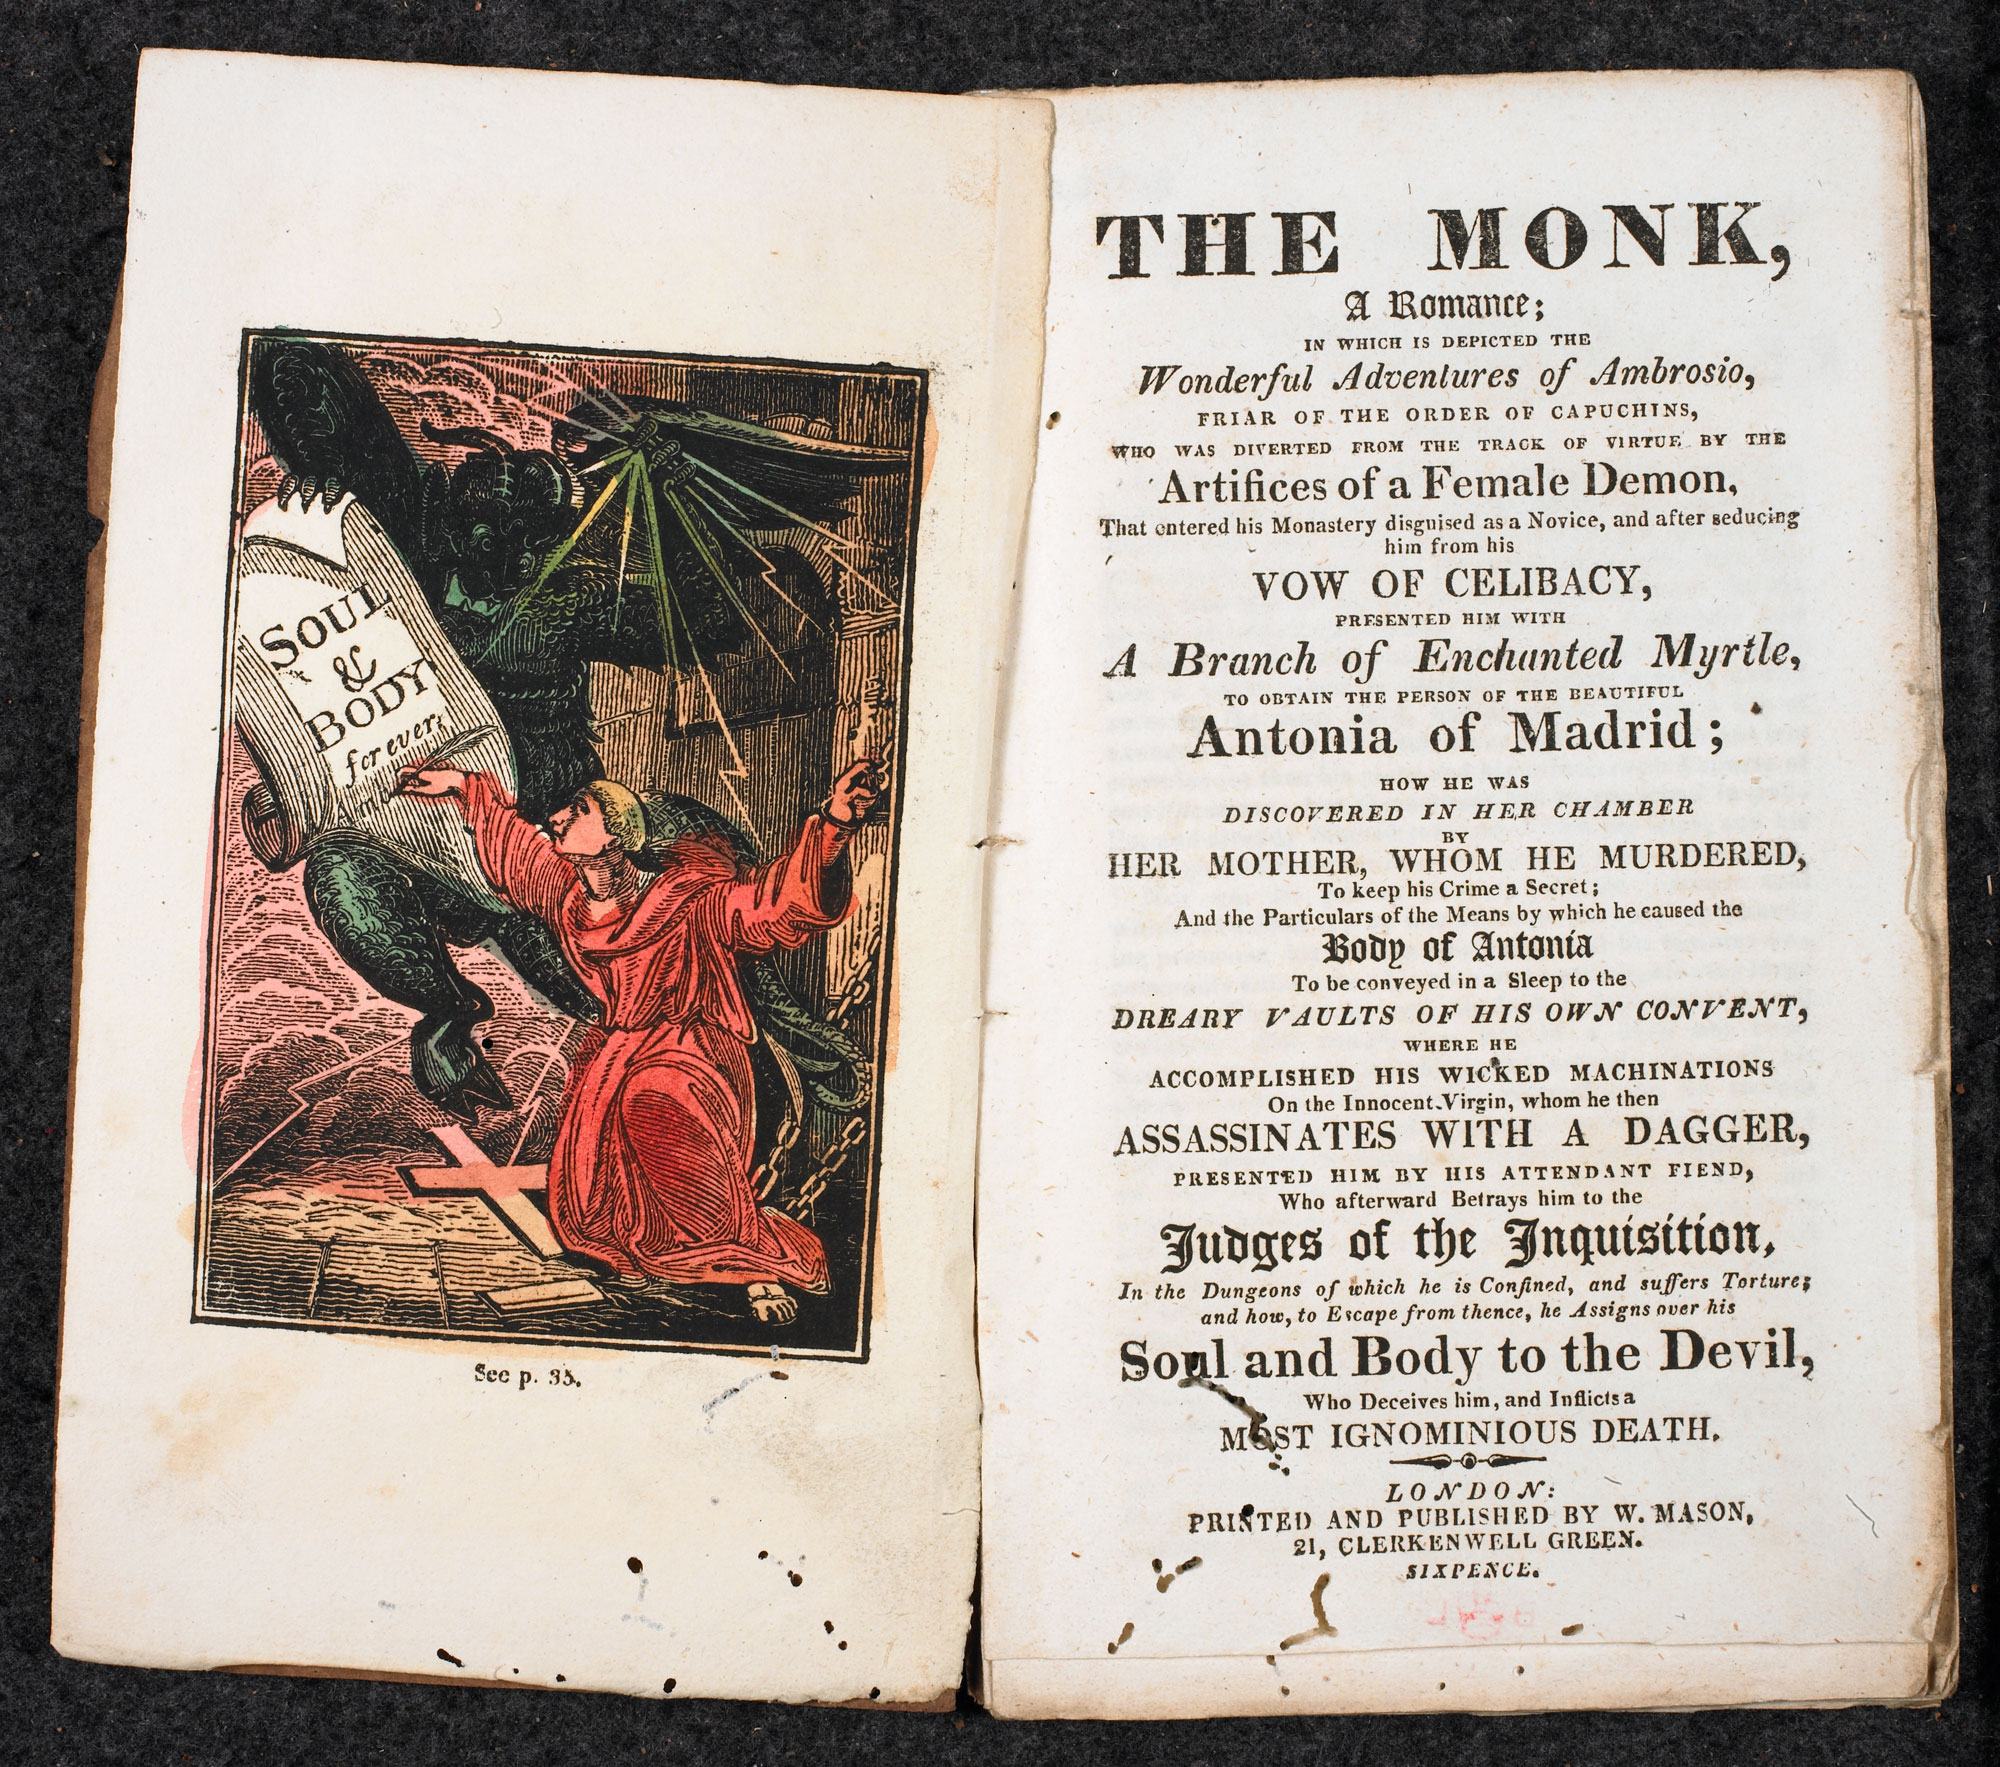 Matthew Lewis, The Monk [page: frontispiece and title page]